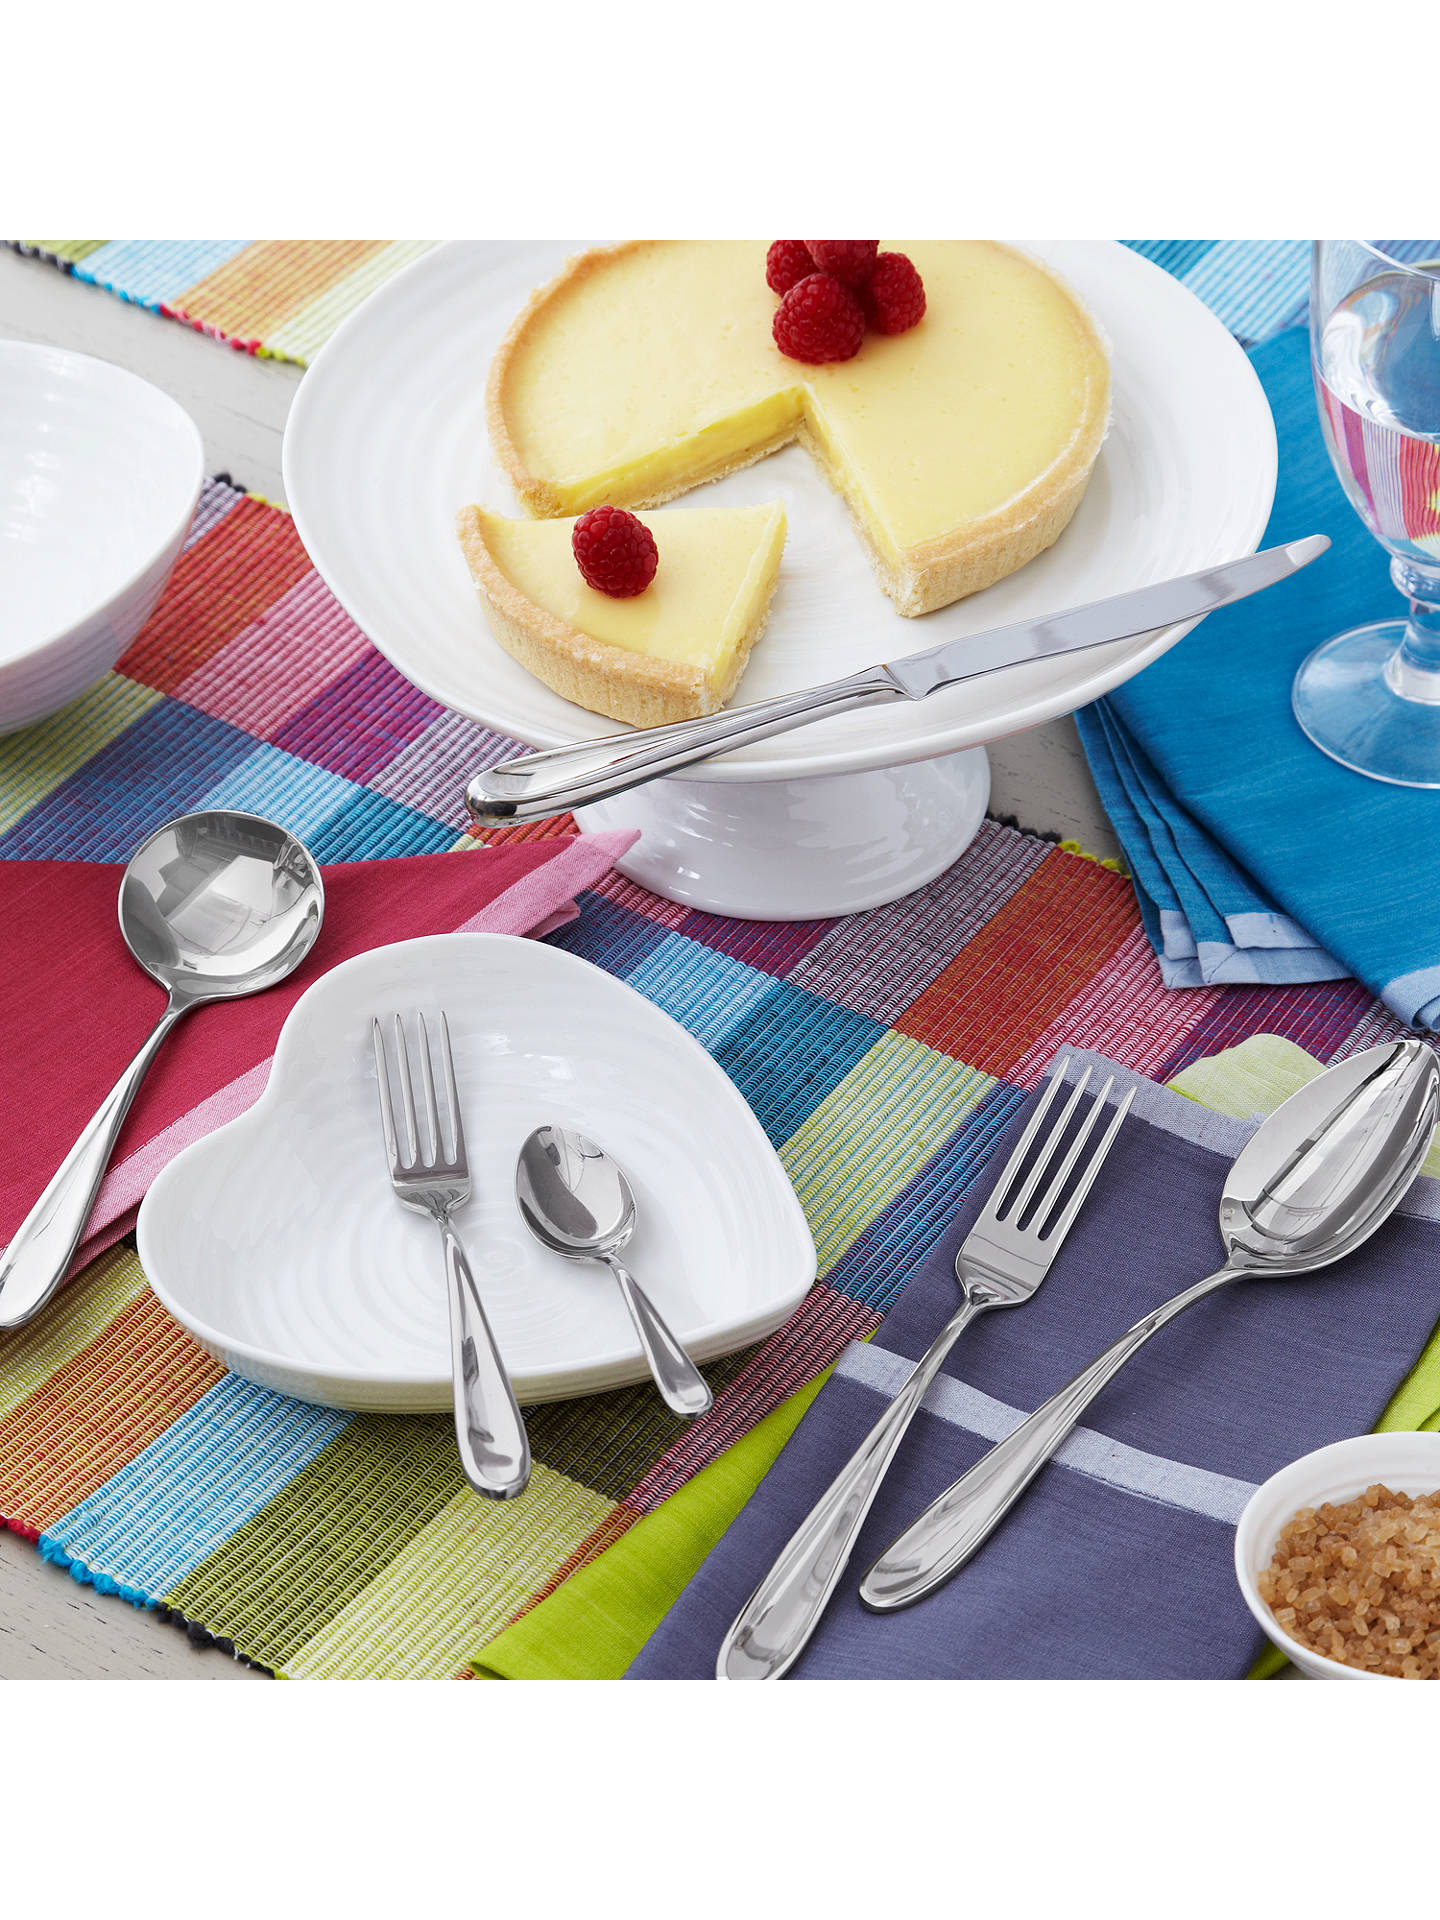 Buy Sophie Conran for Arthur Price Rivelin Pastry Forks, Set of 6 Online at johnlewis.com